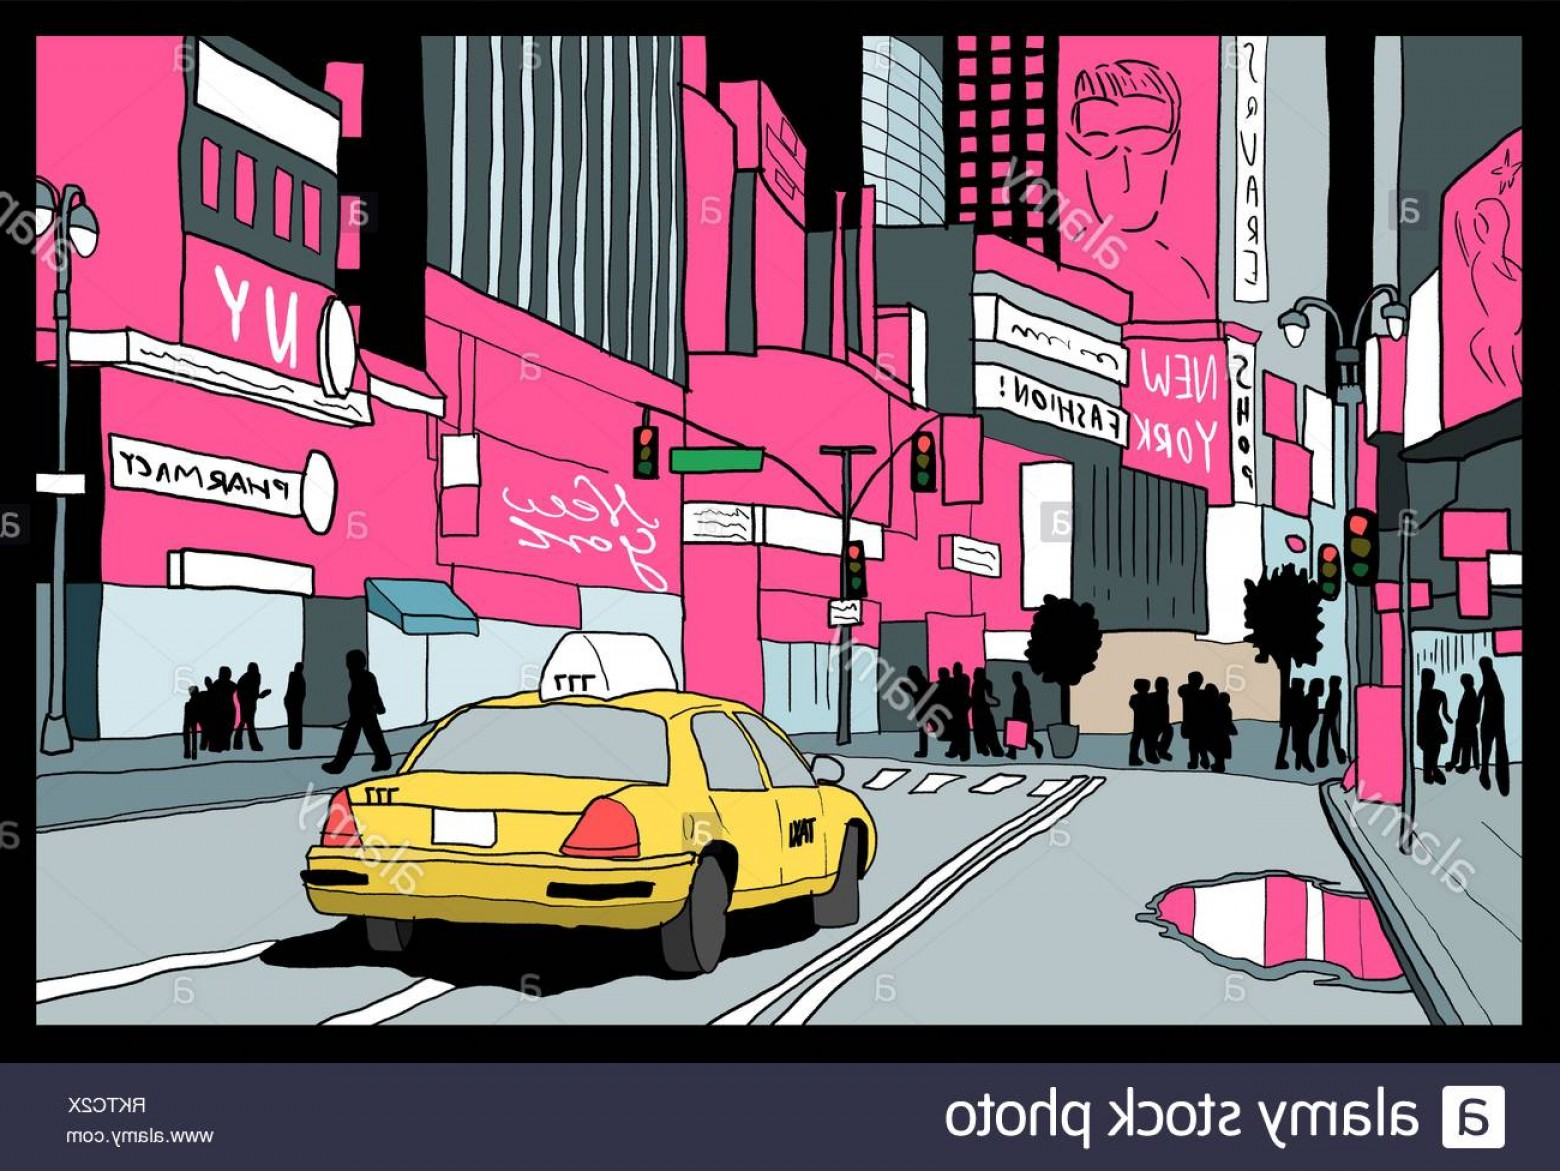 New York Taxi Cab Vector: New York City Lights Night View Of Manhattan Taxi Cab At Times Square Image